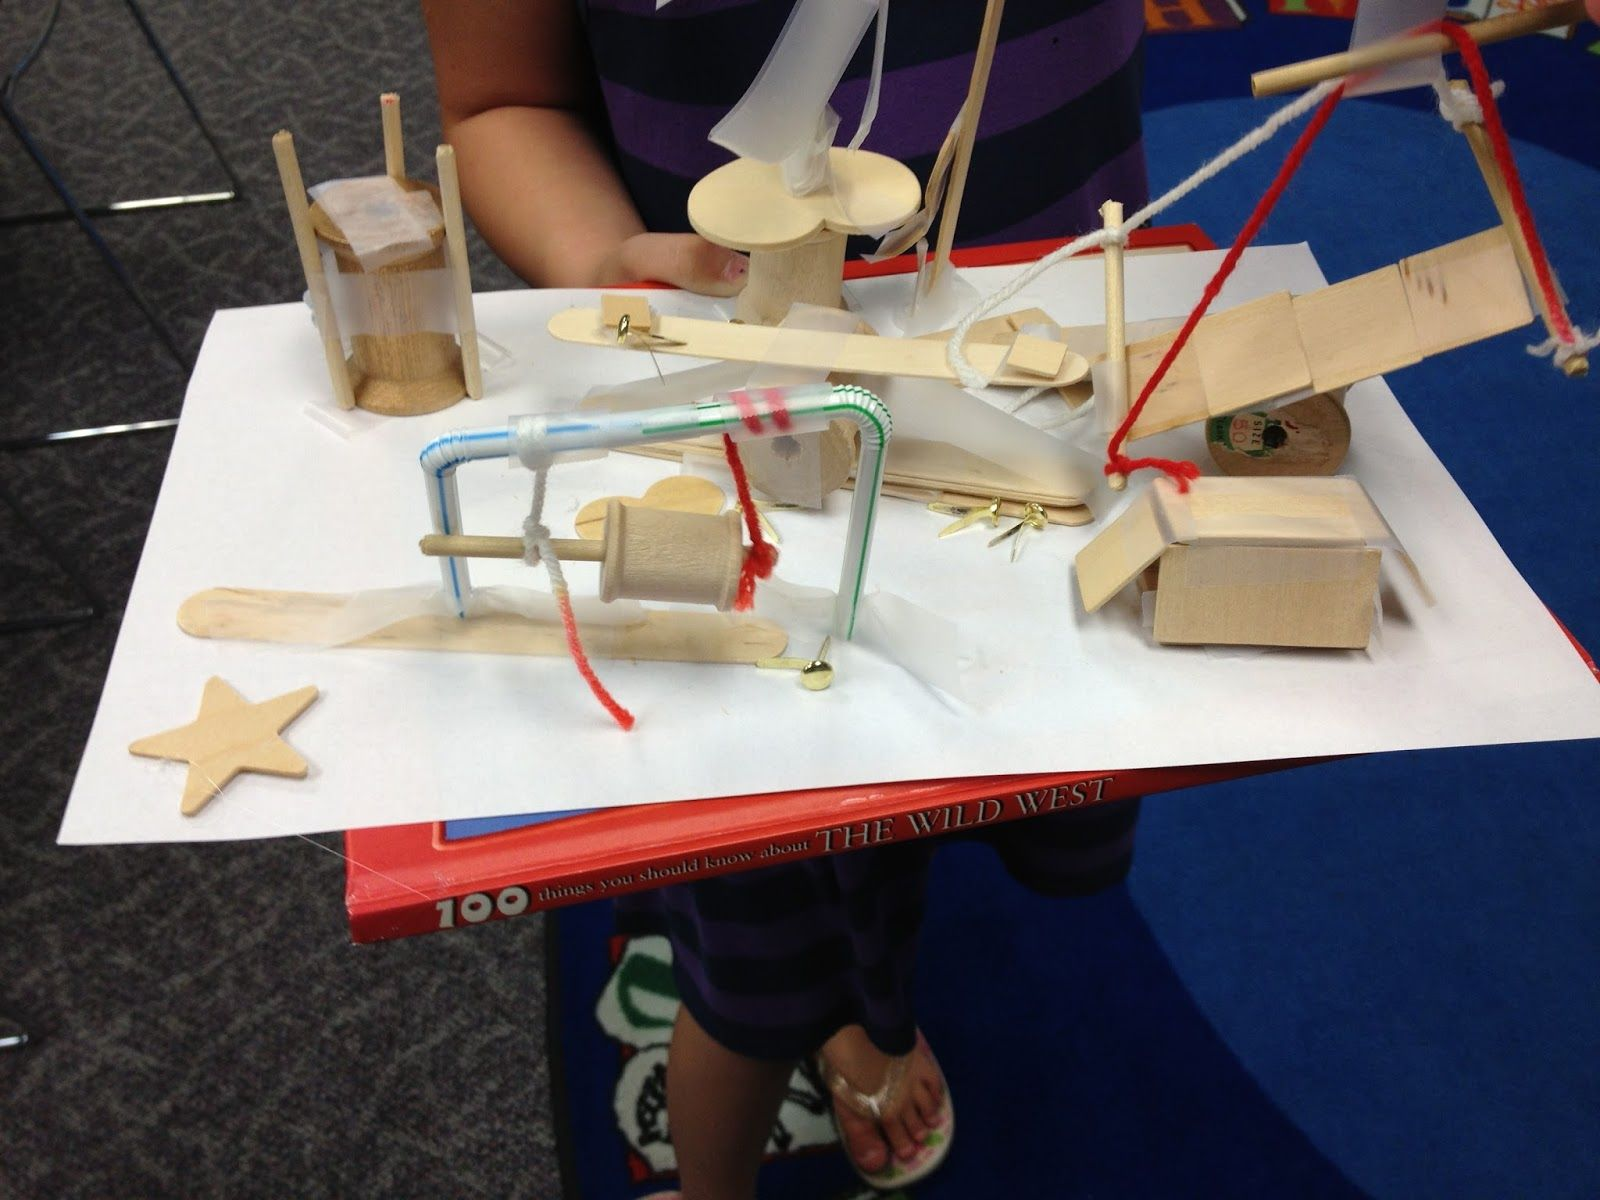 Simple machines project ideas - Playground Adventures Teach About Simple Machines Then Have Kids Build Their Own Playgrounds Featuring